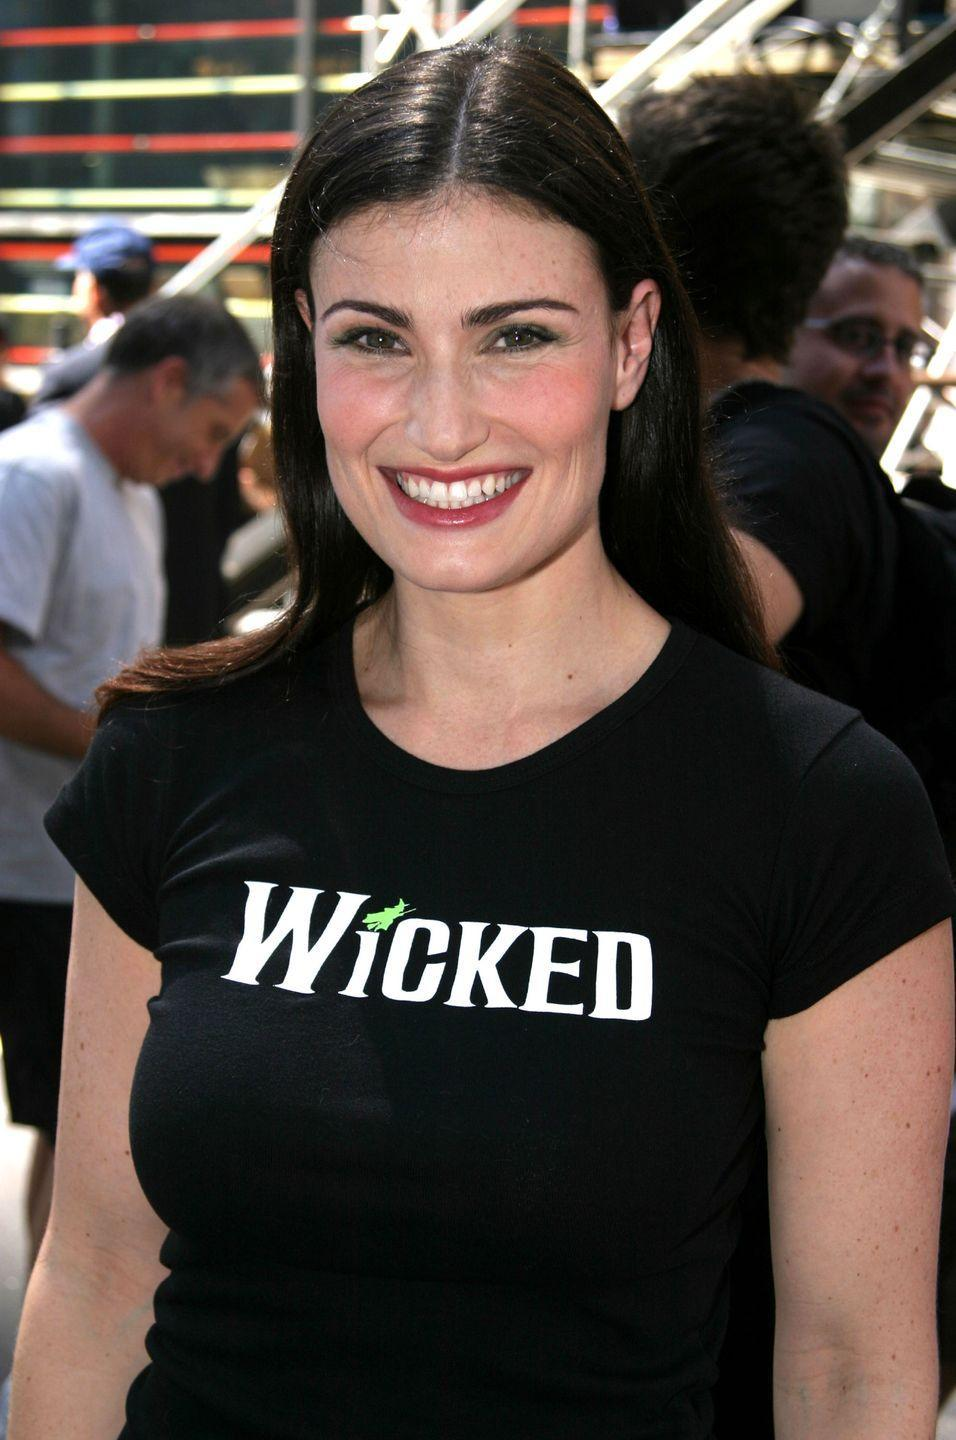 <p>One of the biggest crossover success stories, Idina Menzel made her Broadway debut in 1996's <em>Rent. </em>She starred in a few other shows on Broadway following <em>Rent's </em>success, with her most popular being the breakout <em>Wicked</em>, alongside Kristin Chenoweth. The role earned Menzel a Tony Award. She made her big-screen debut in 2001's <em>Kissing Jessica Stein</em>, but started gaining buzz after appearing alongside Patrick Dempsey and Amy Adams in 2007's <em>Enchanted.</em> In 2013, Menzel became more of a household name providing the voice of Elsa in Disney's <em>Frozen. </em><em><br></em></p>